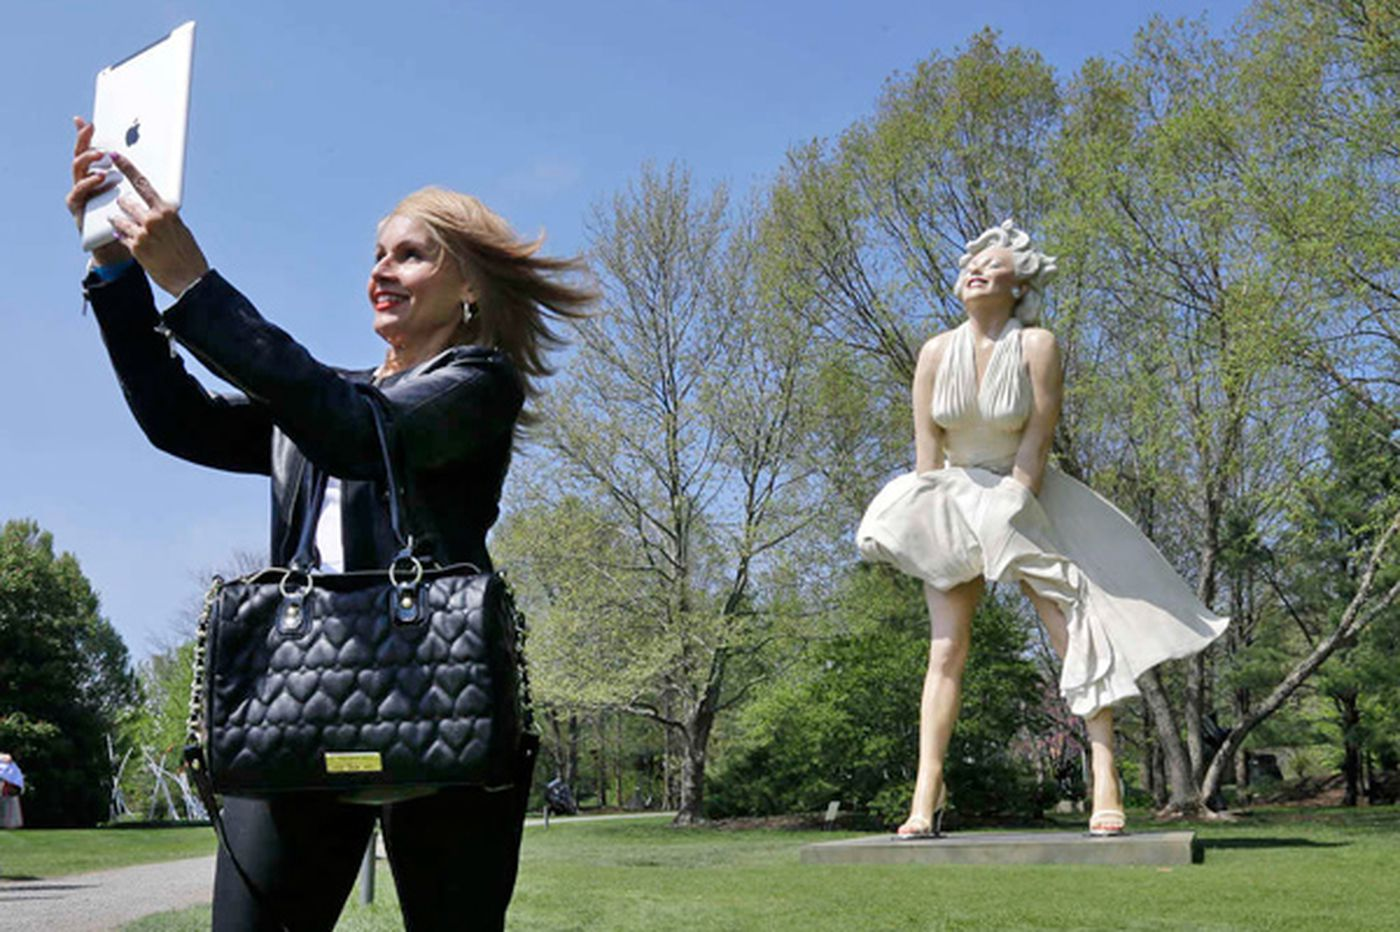 Marilyn unveiled at N.J. art garden